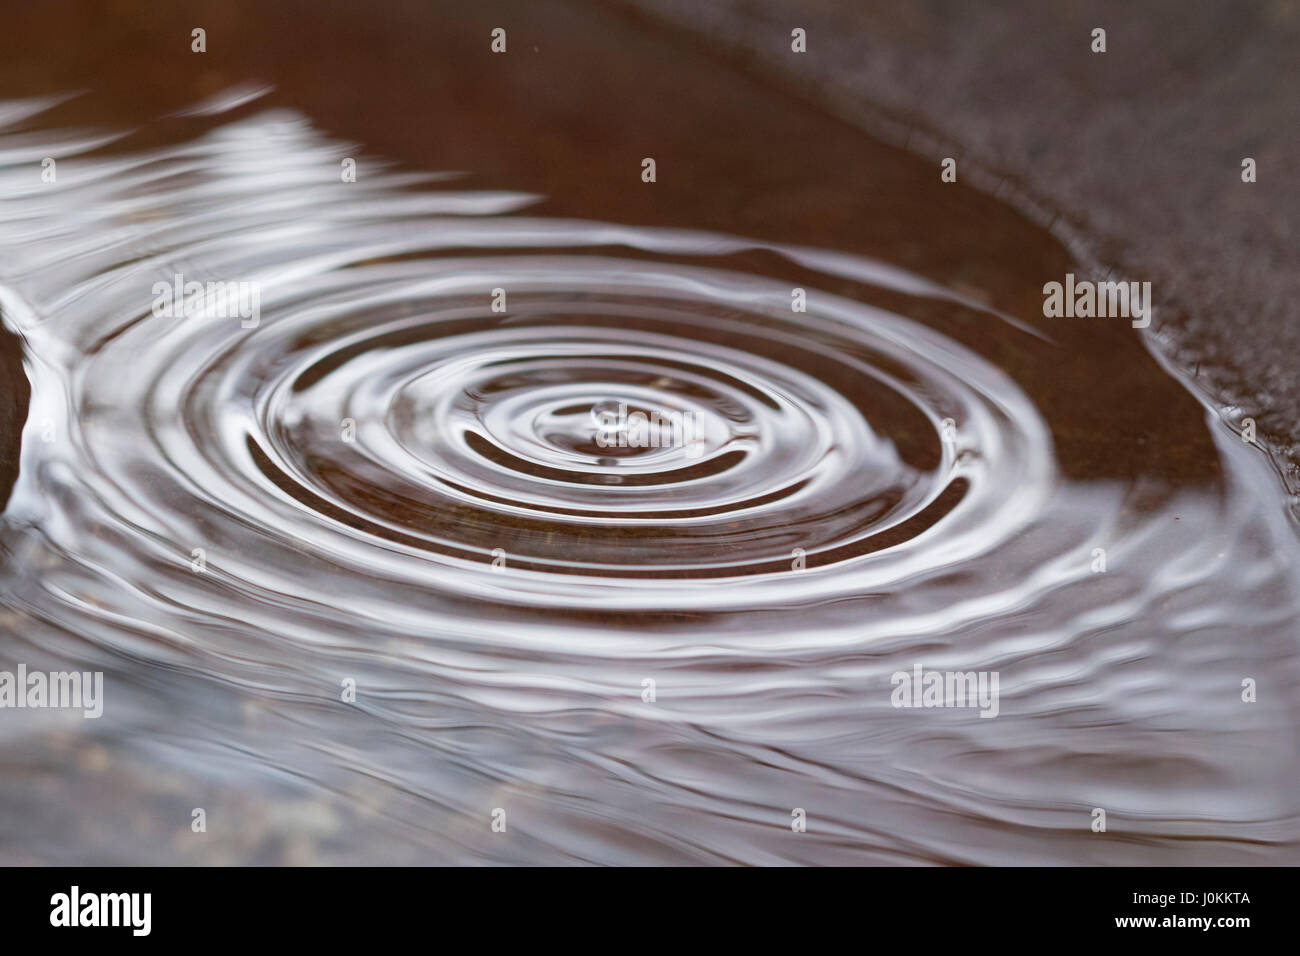 Raindrops form concentric circles - Stock Image